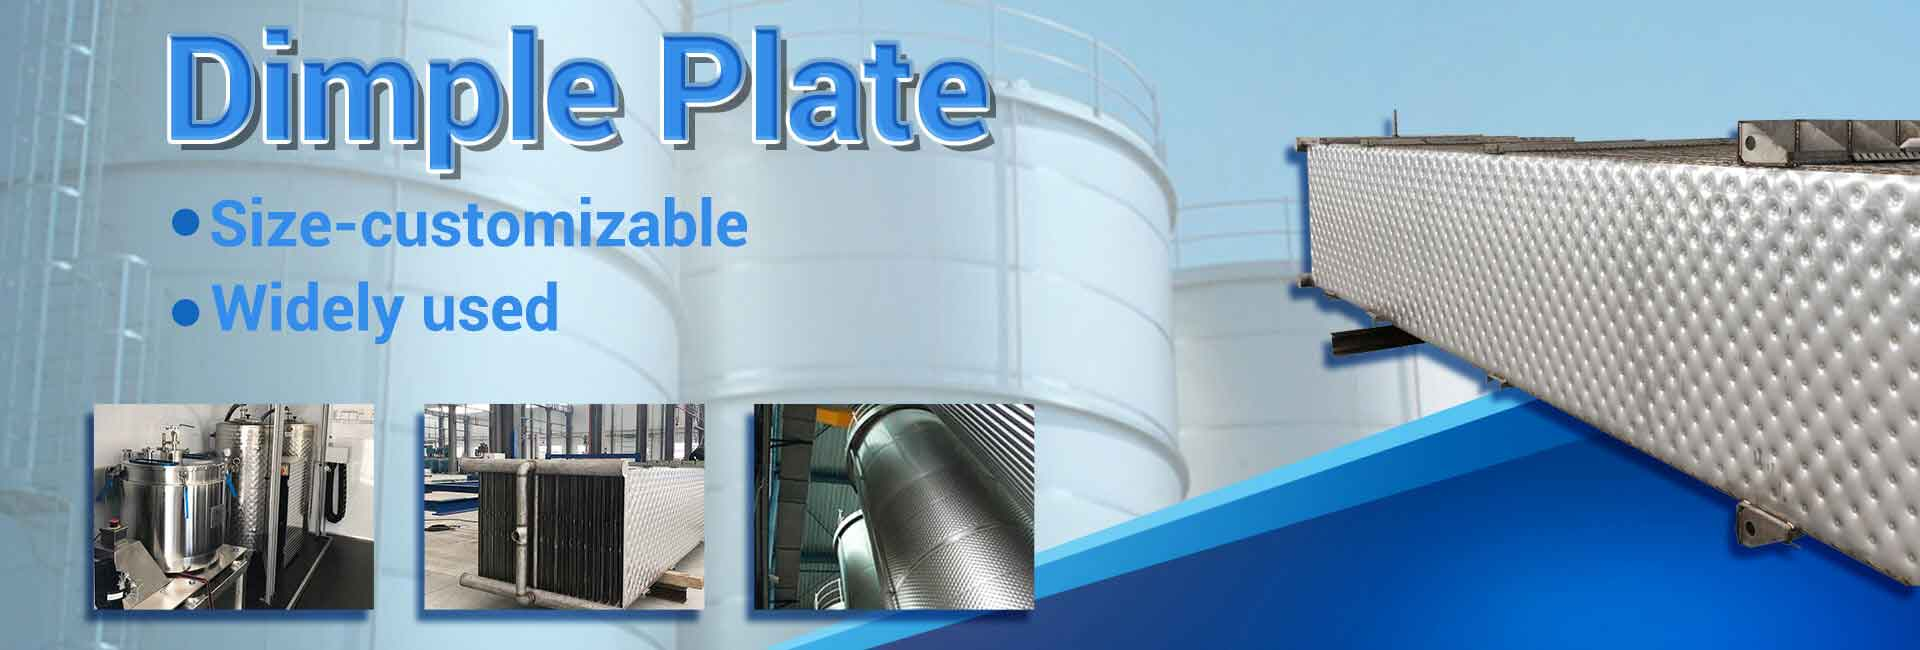 Dimple Plate